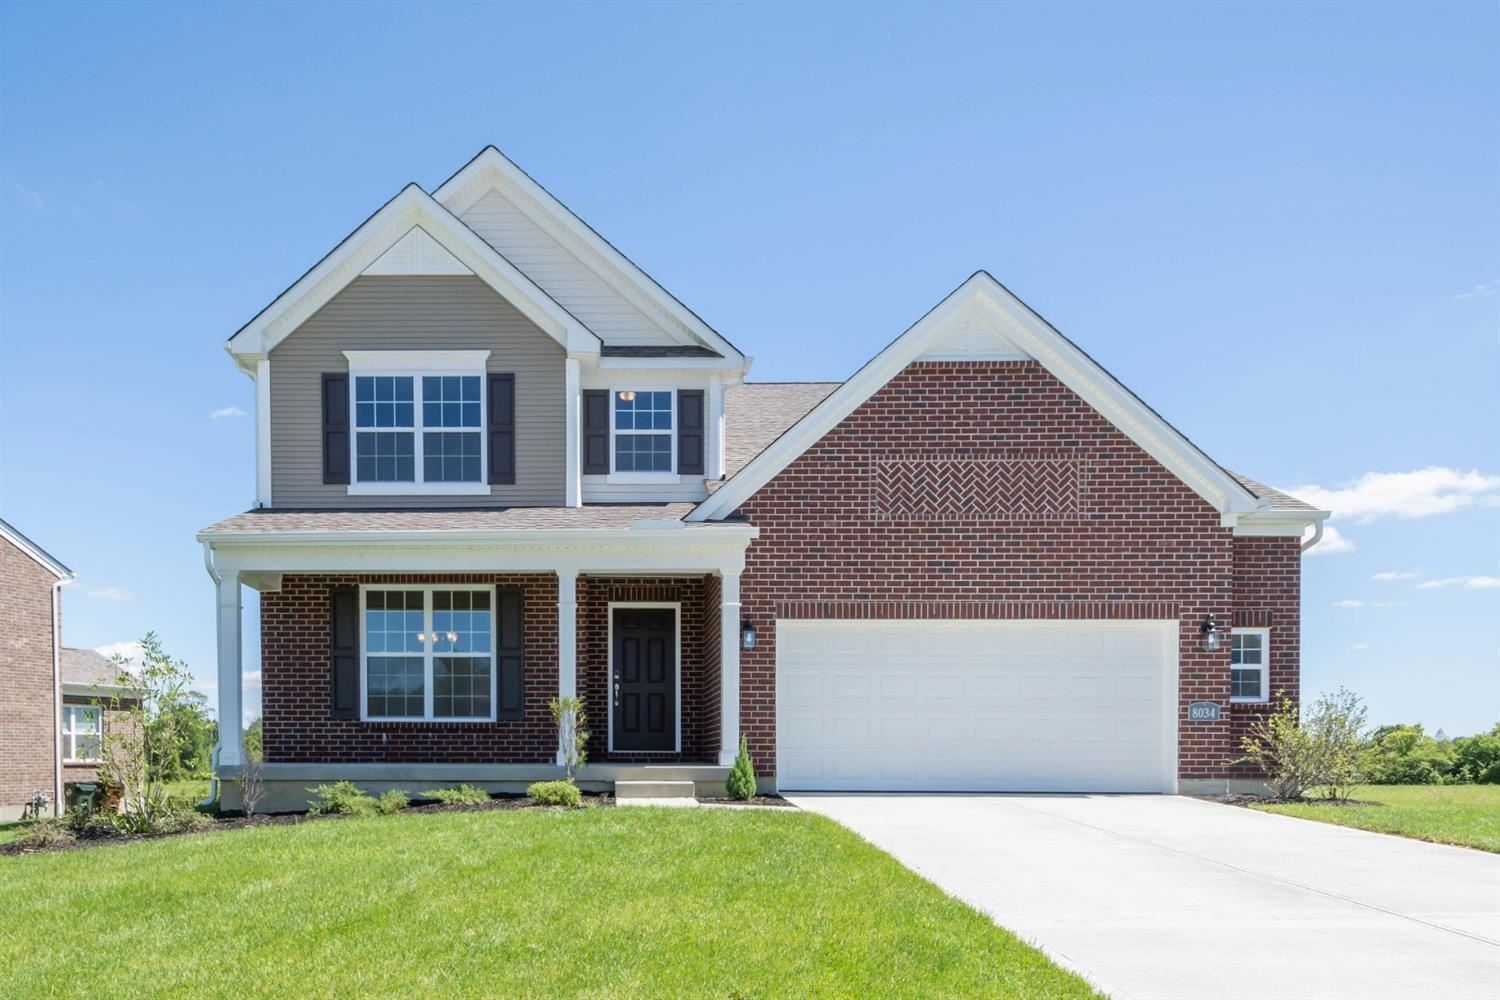 8034 Taffy Drive #50, West Chester, OH 45069 - #: 1657555